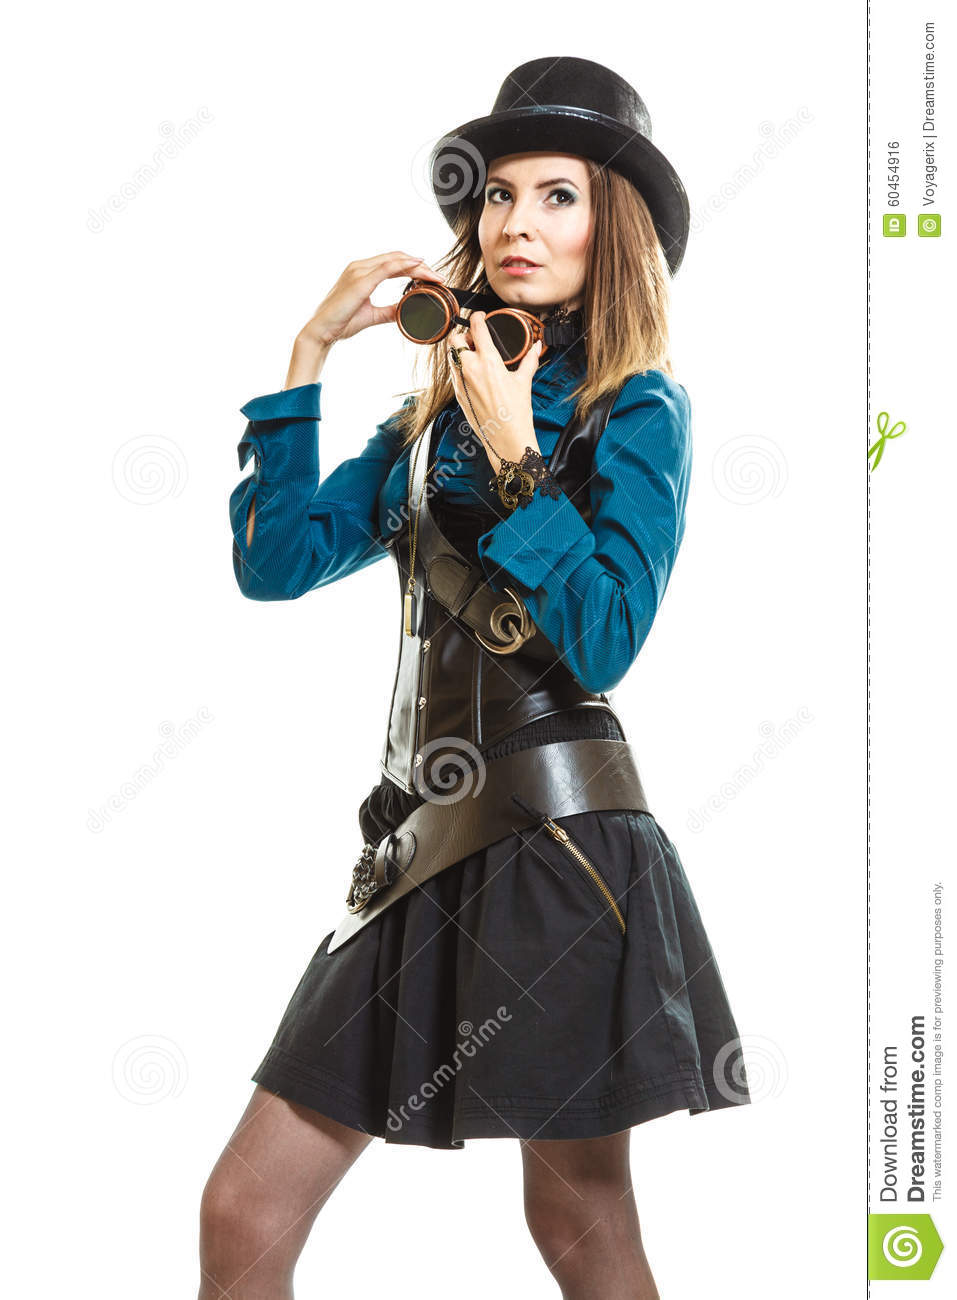 Cool Girl In Steampunk Style Royalty Free Stock Image 60469912